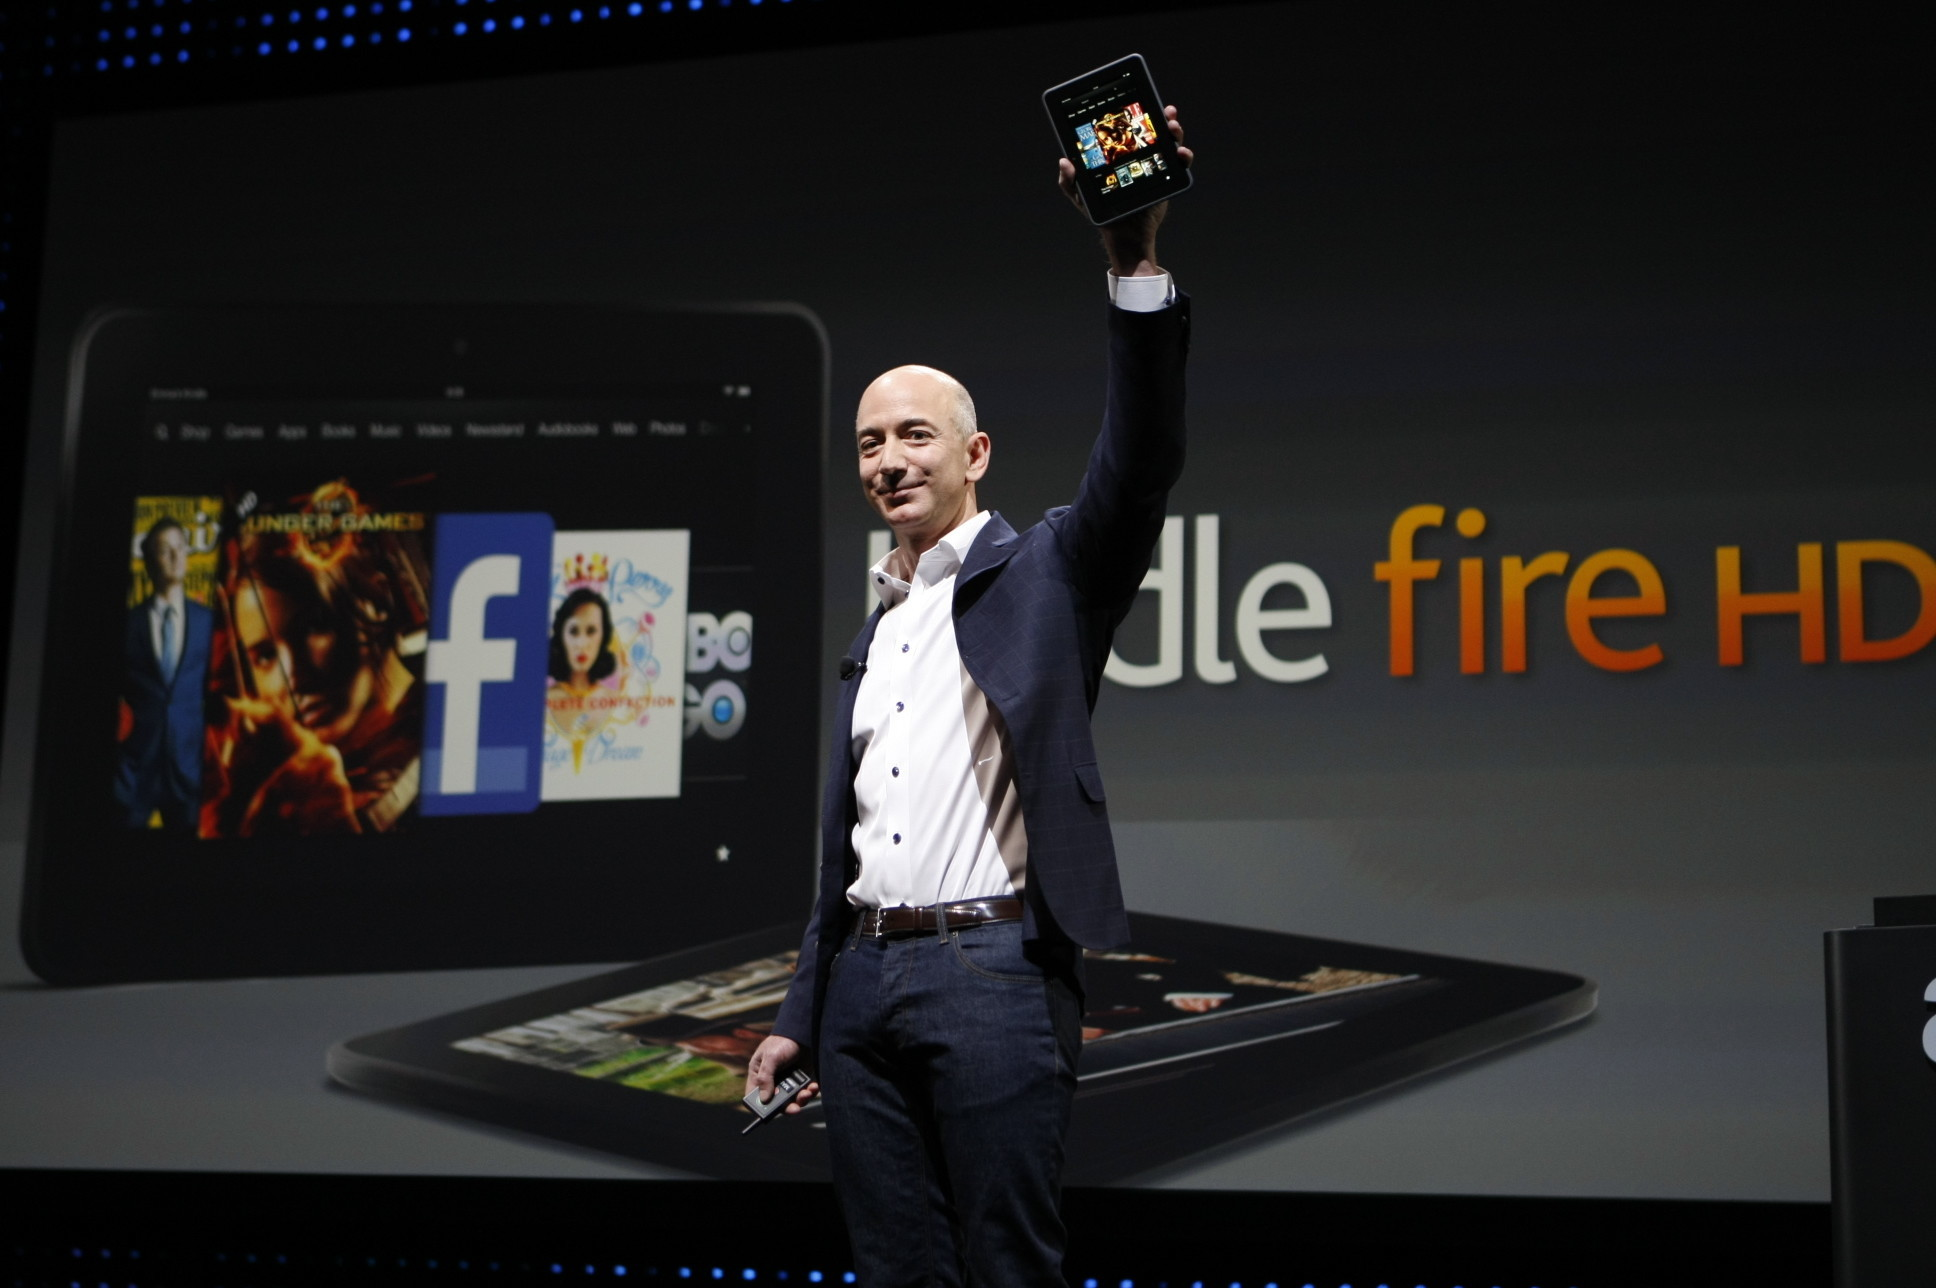 Amazon CEO Jeff Bezos unveils the Kindle Fire HD in 2012.